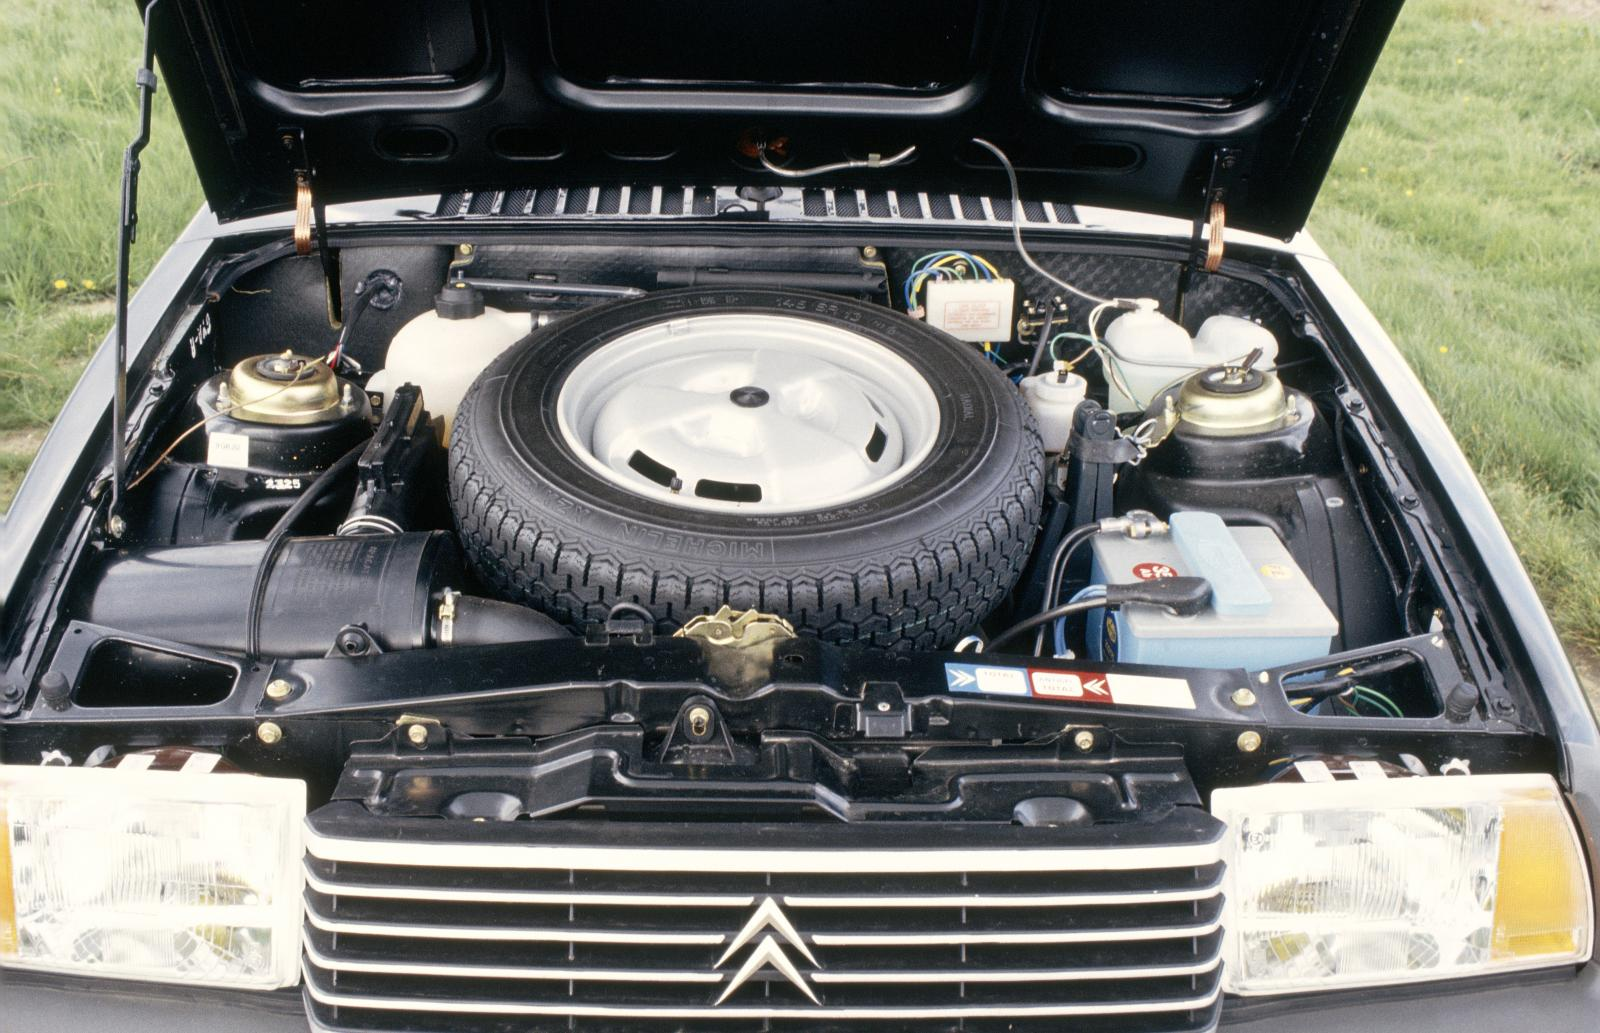 Visa 11 RE 1983 engine